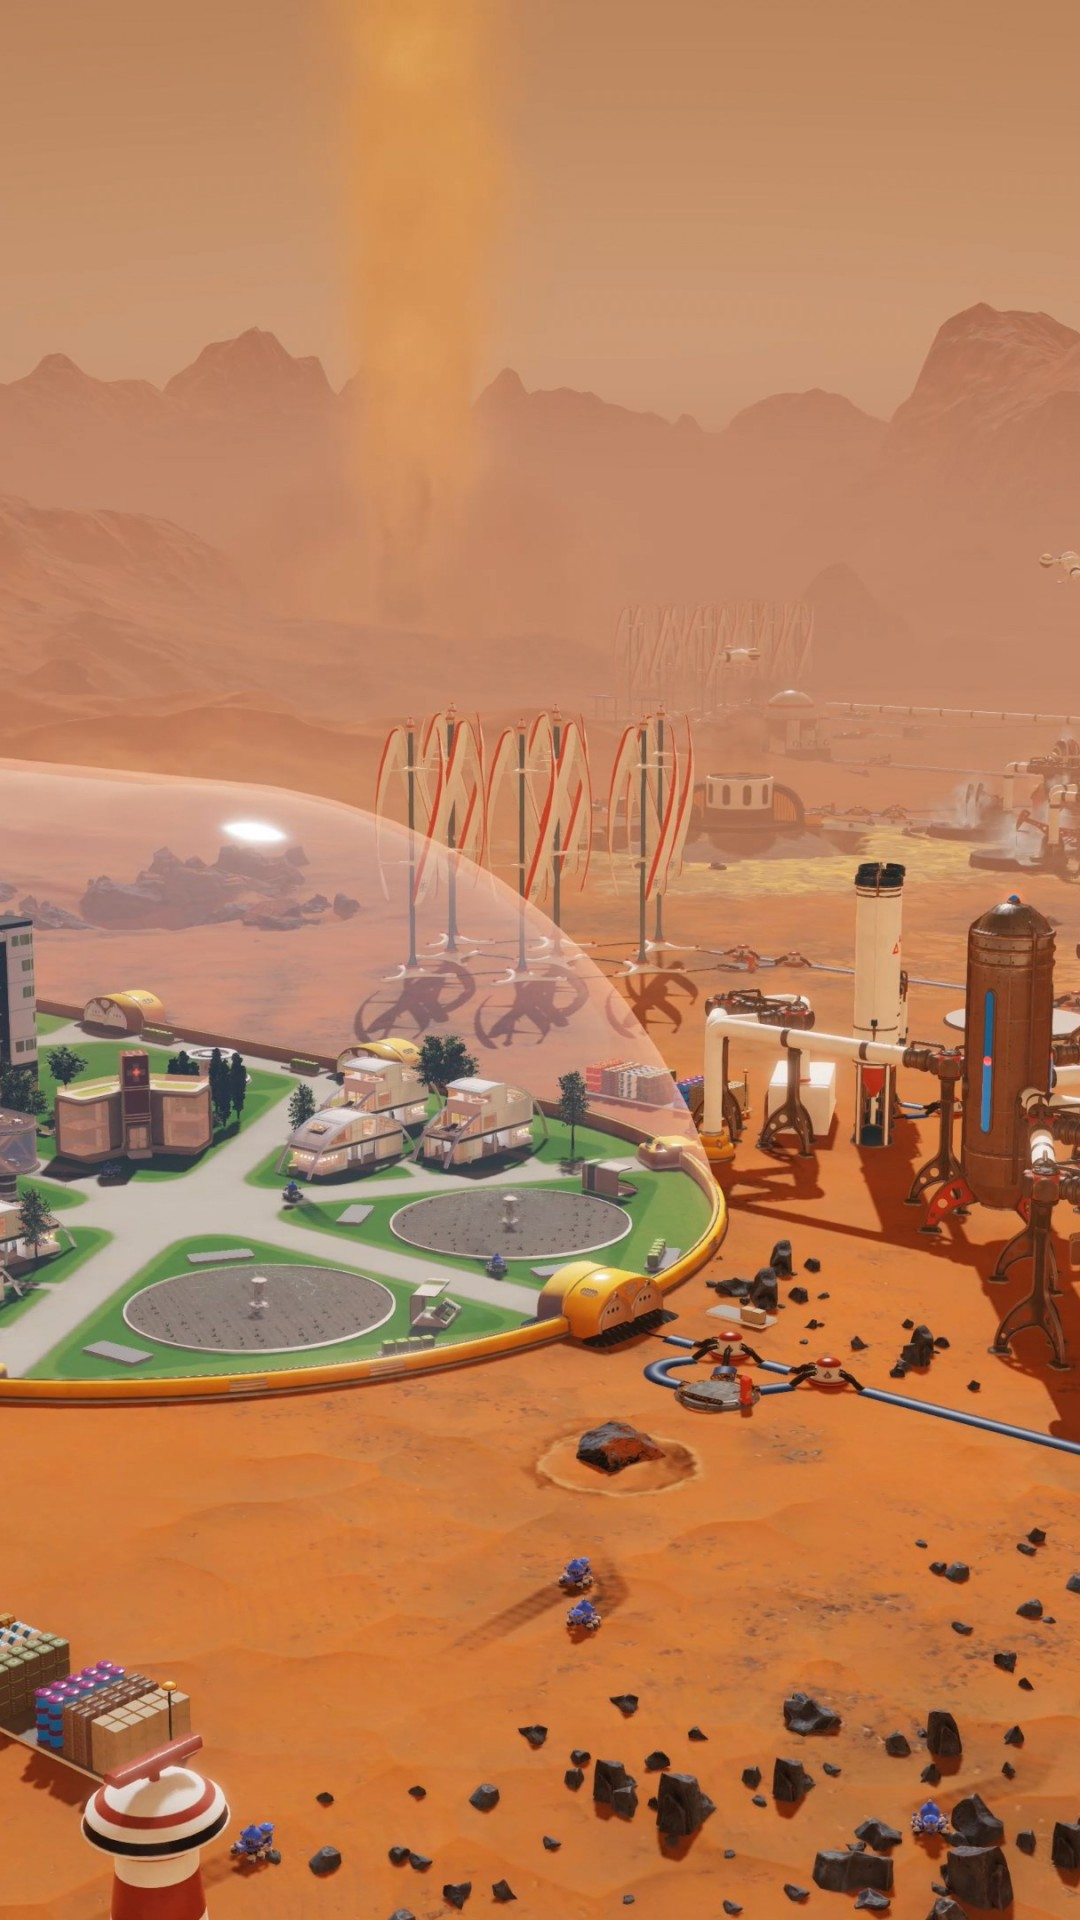 Wallpaper Surviving Mars Screenshot 4k Games 17773